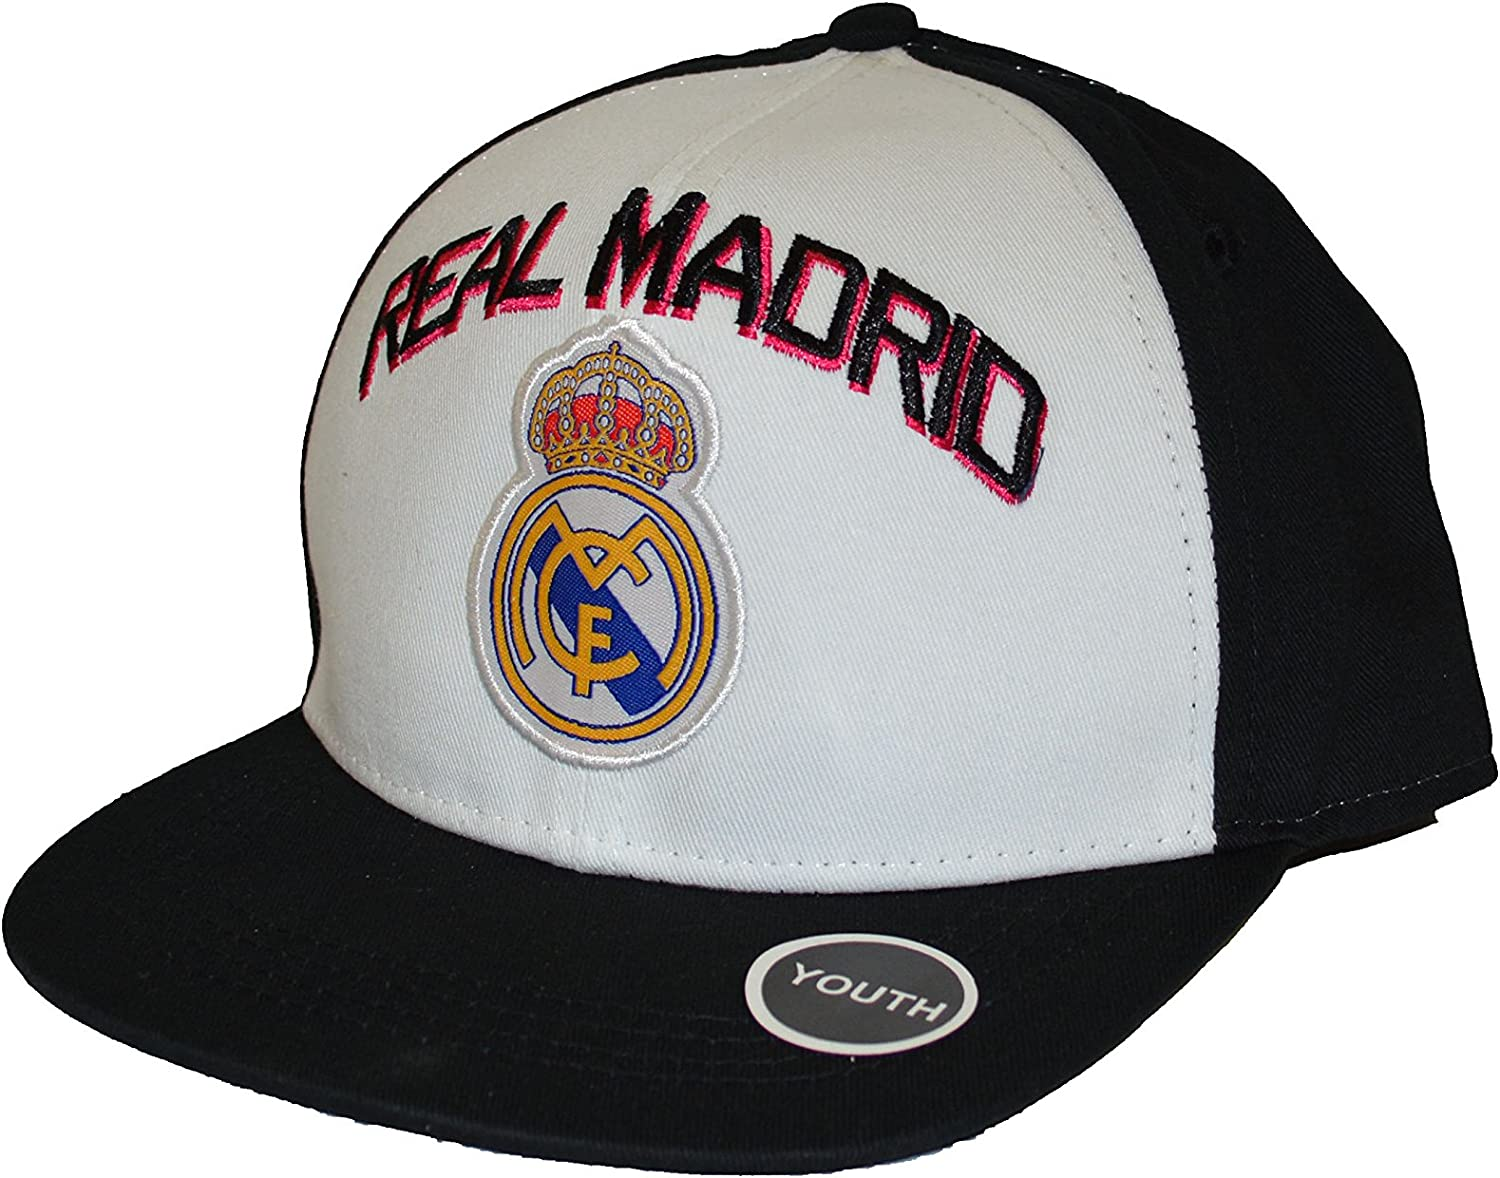 Real Madrid Fc Club Snapback Youth Kids Adjustable Cap Hat - White-Black New Season